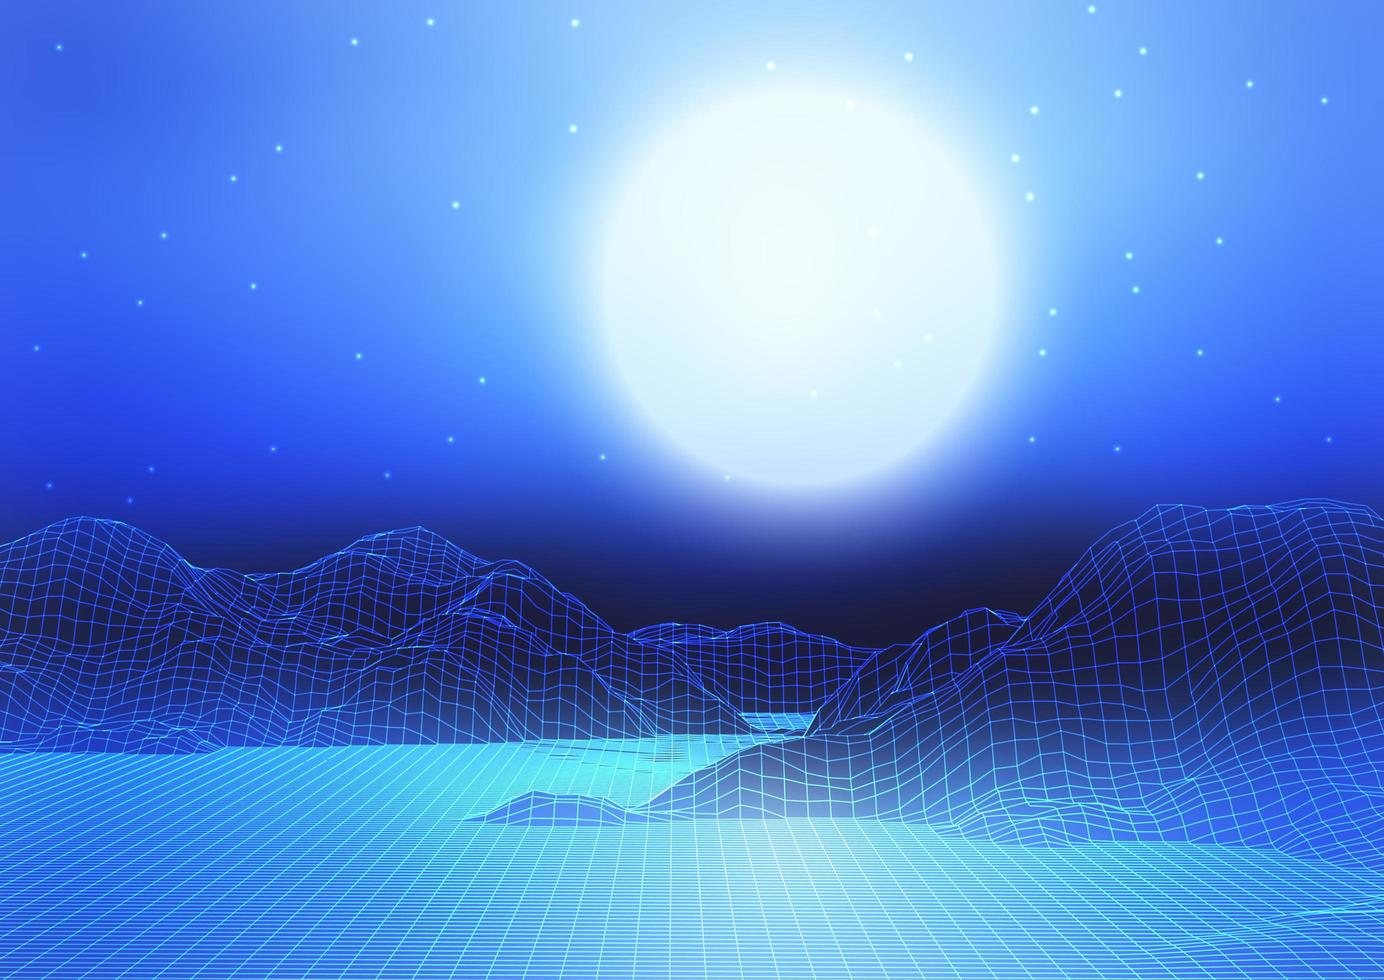 Abstract Wireframe Landscape with Moon and Starry Sky